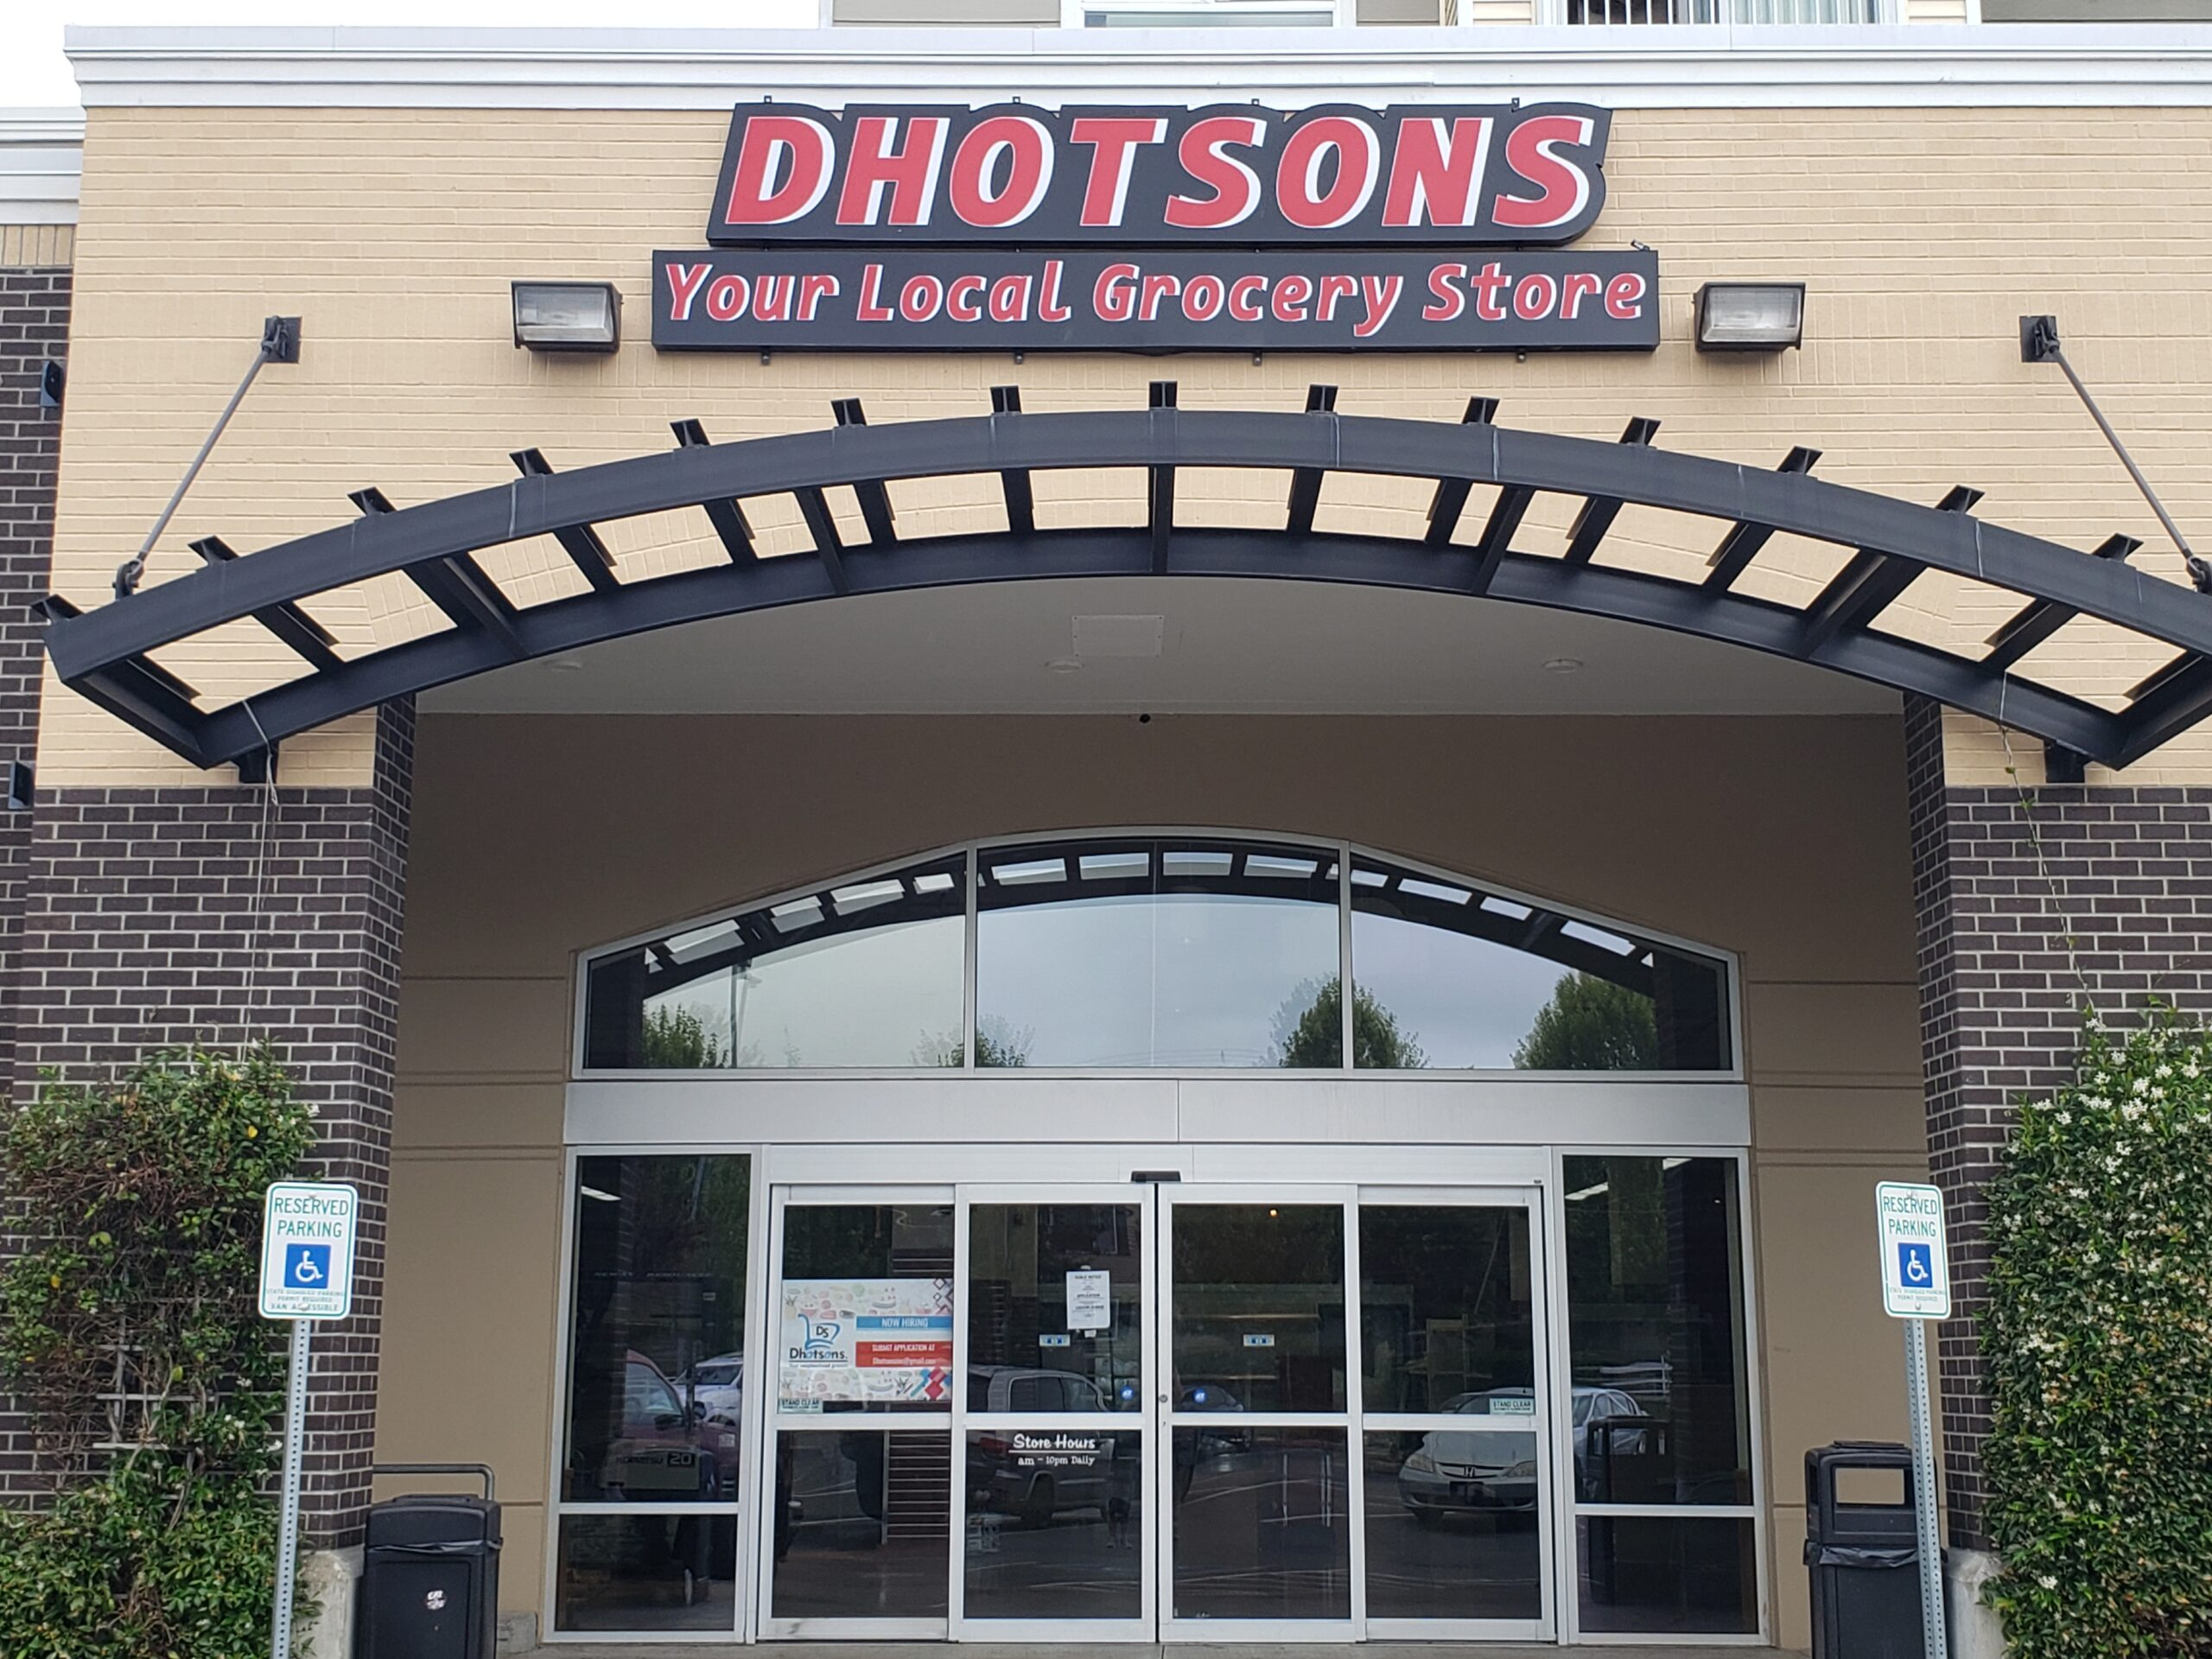 dhotsons, lea hill grocery store, is there a grocery store on lea hill, dhotsons lea hill, what is dhotsons lea hill, dhotsons Auburn WA, city of auburn grocery store, Kuljit Singh dhotsons, Singh dhotsons